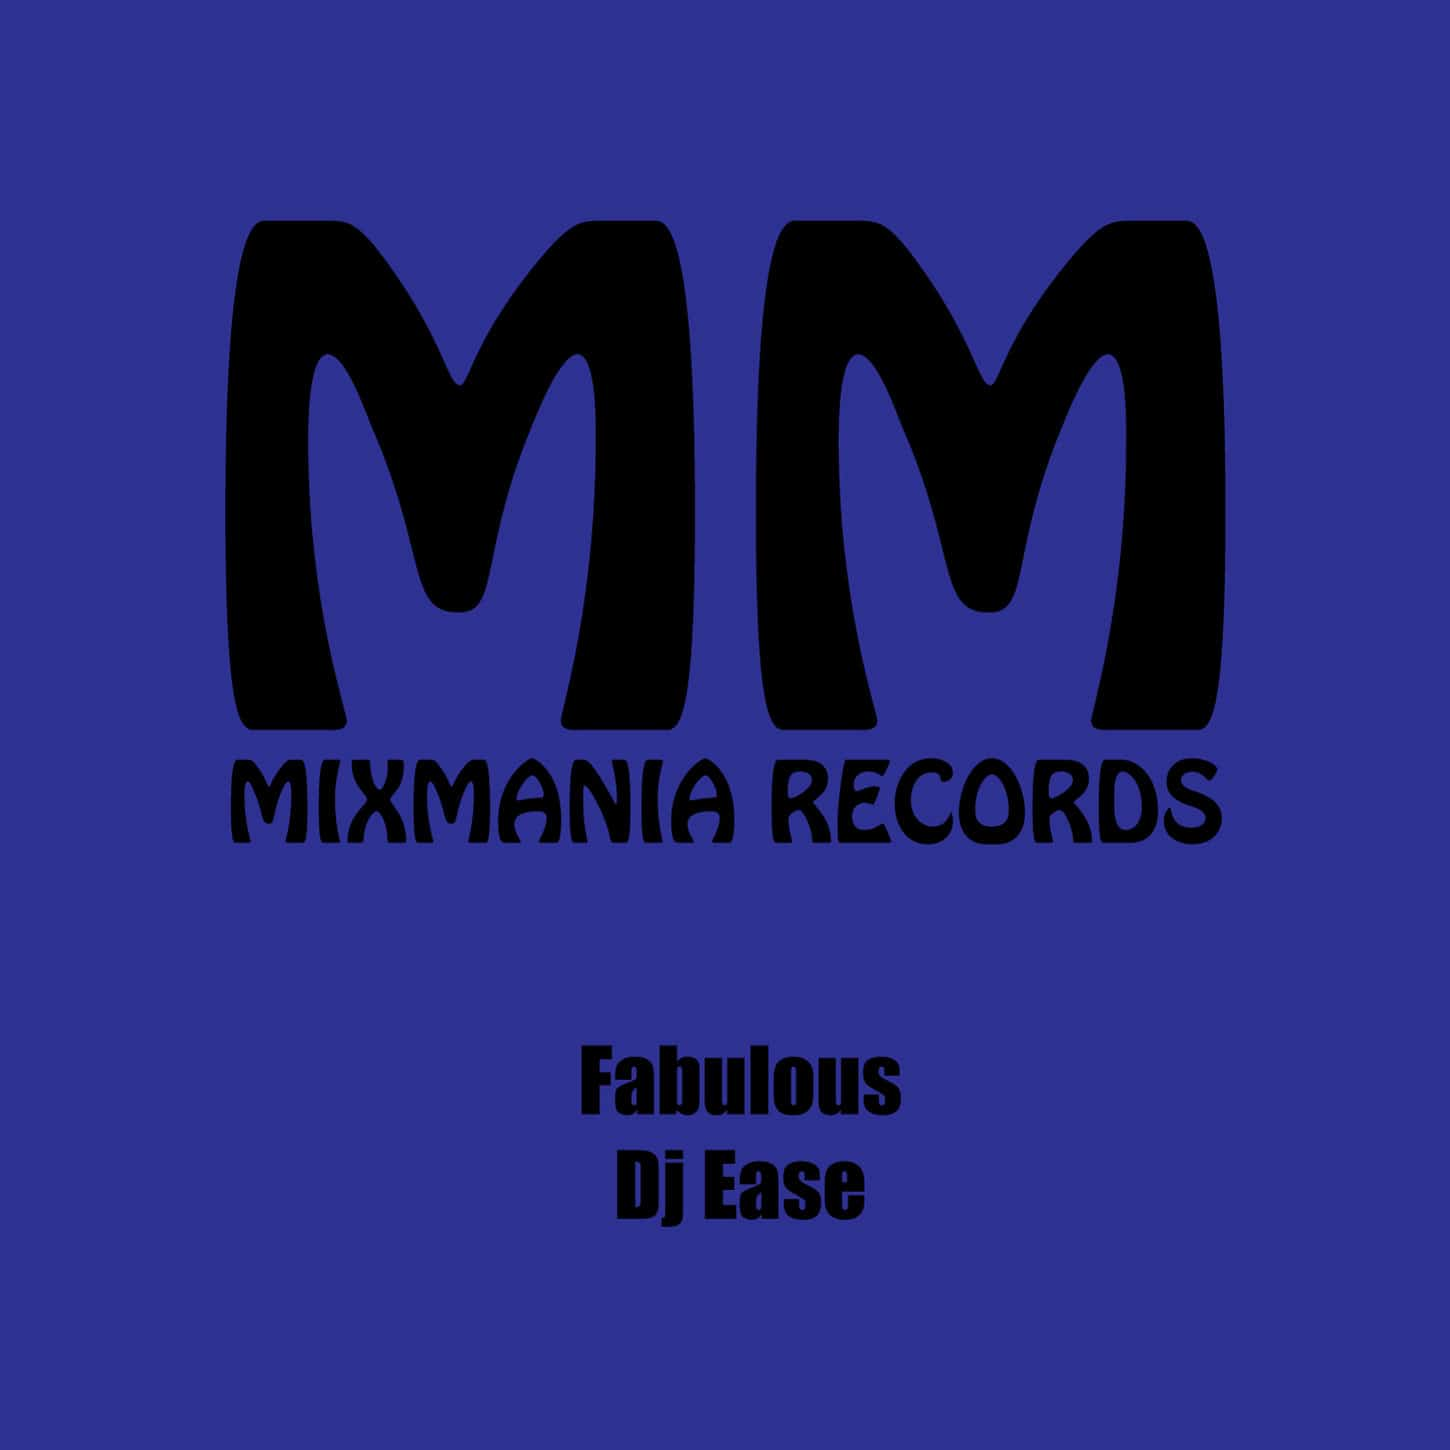 Fabulous (Original Mix) By Dj Ease Art Work